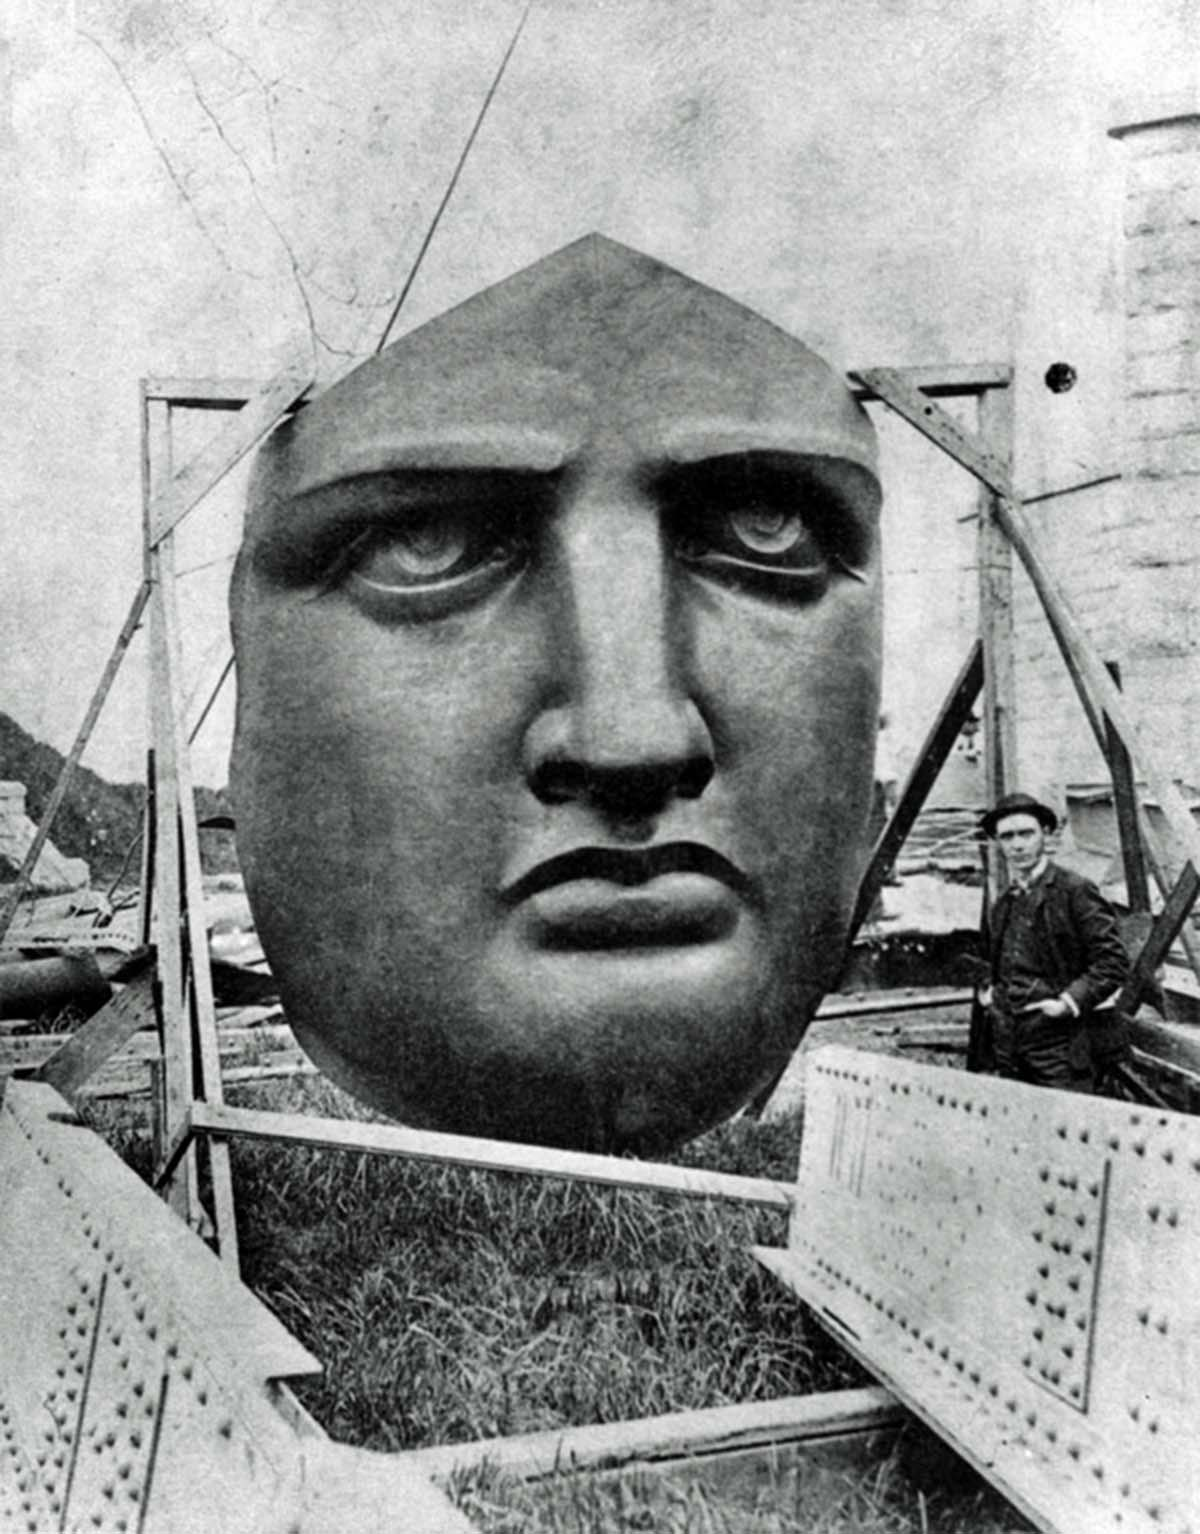 Even before Lady Liberty became an American symbol of freedom, pieces of the statue were popular tourist attractions in their own right as people flocked to see the work under construction.